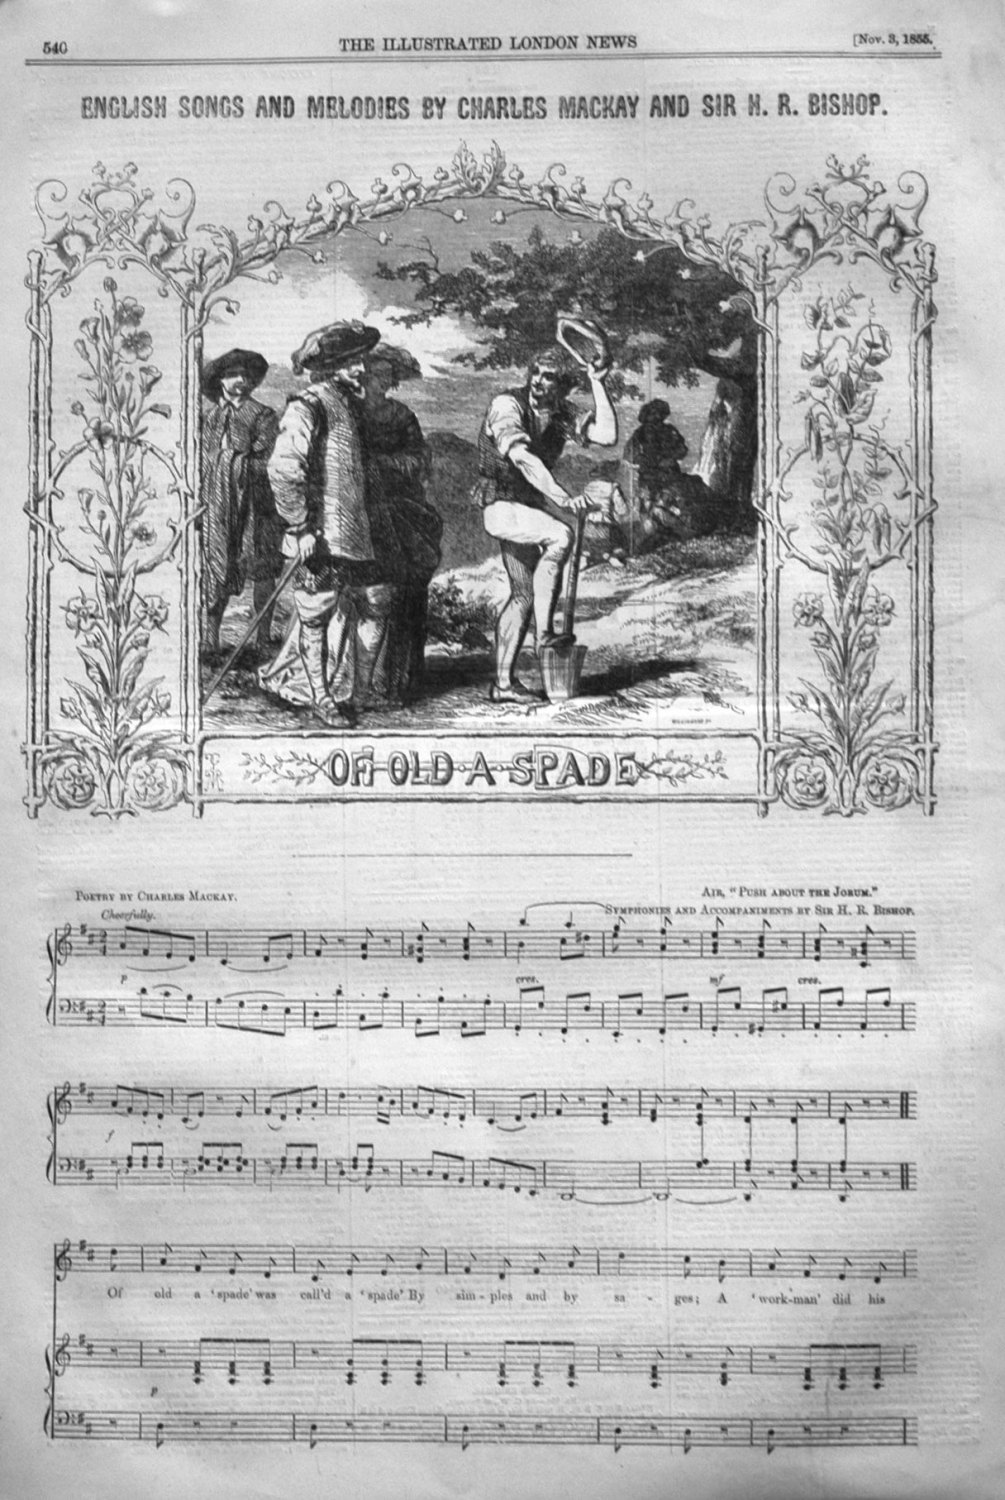 English Songs and Melodies by Charles Mackay and Sir H.R. Bishop. Of Old A